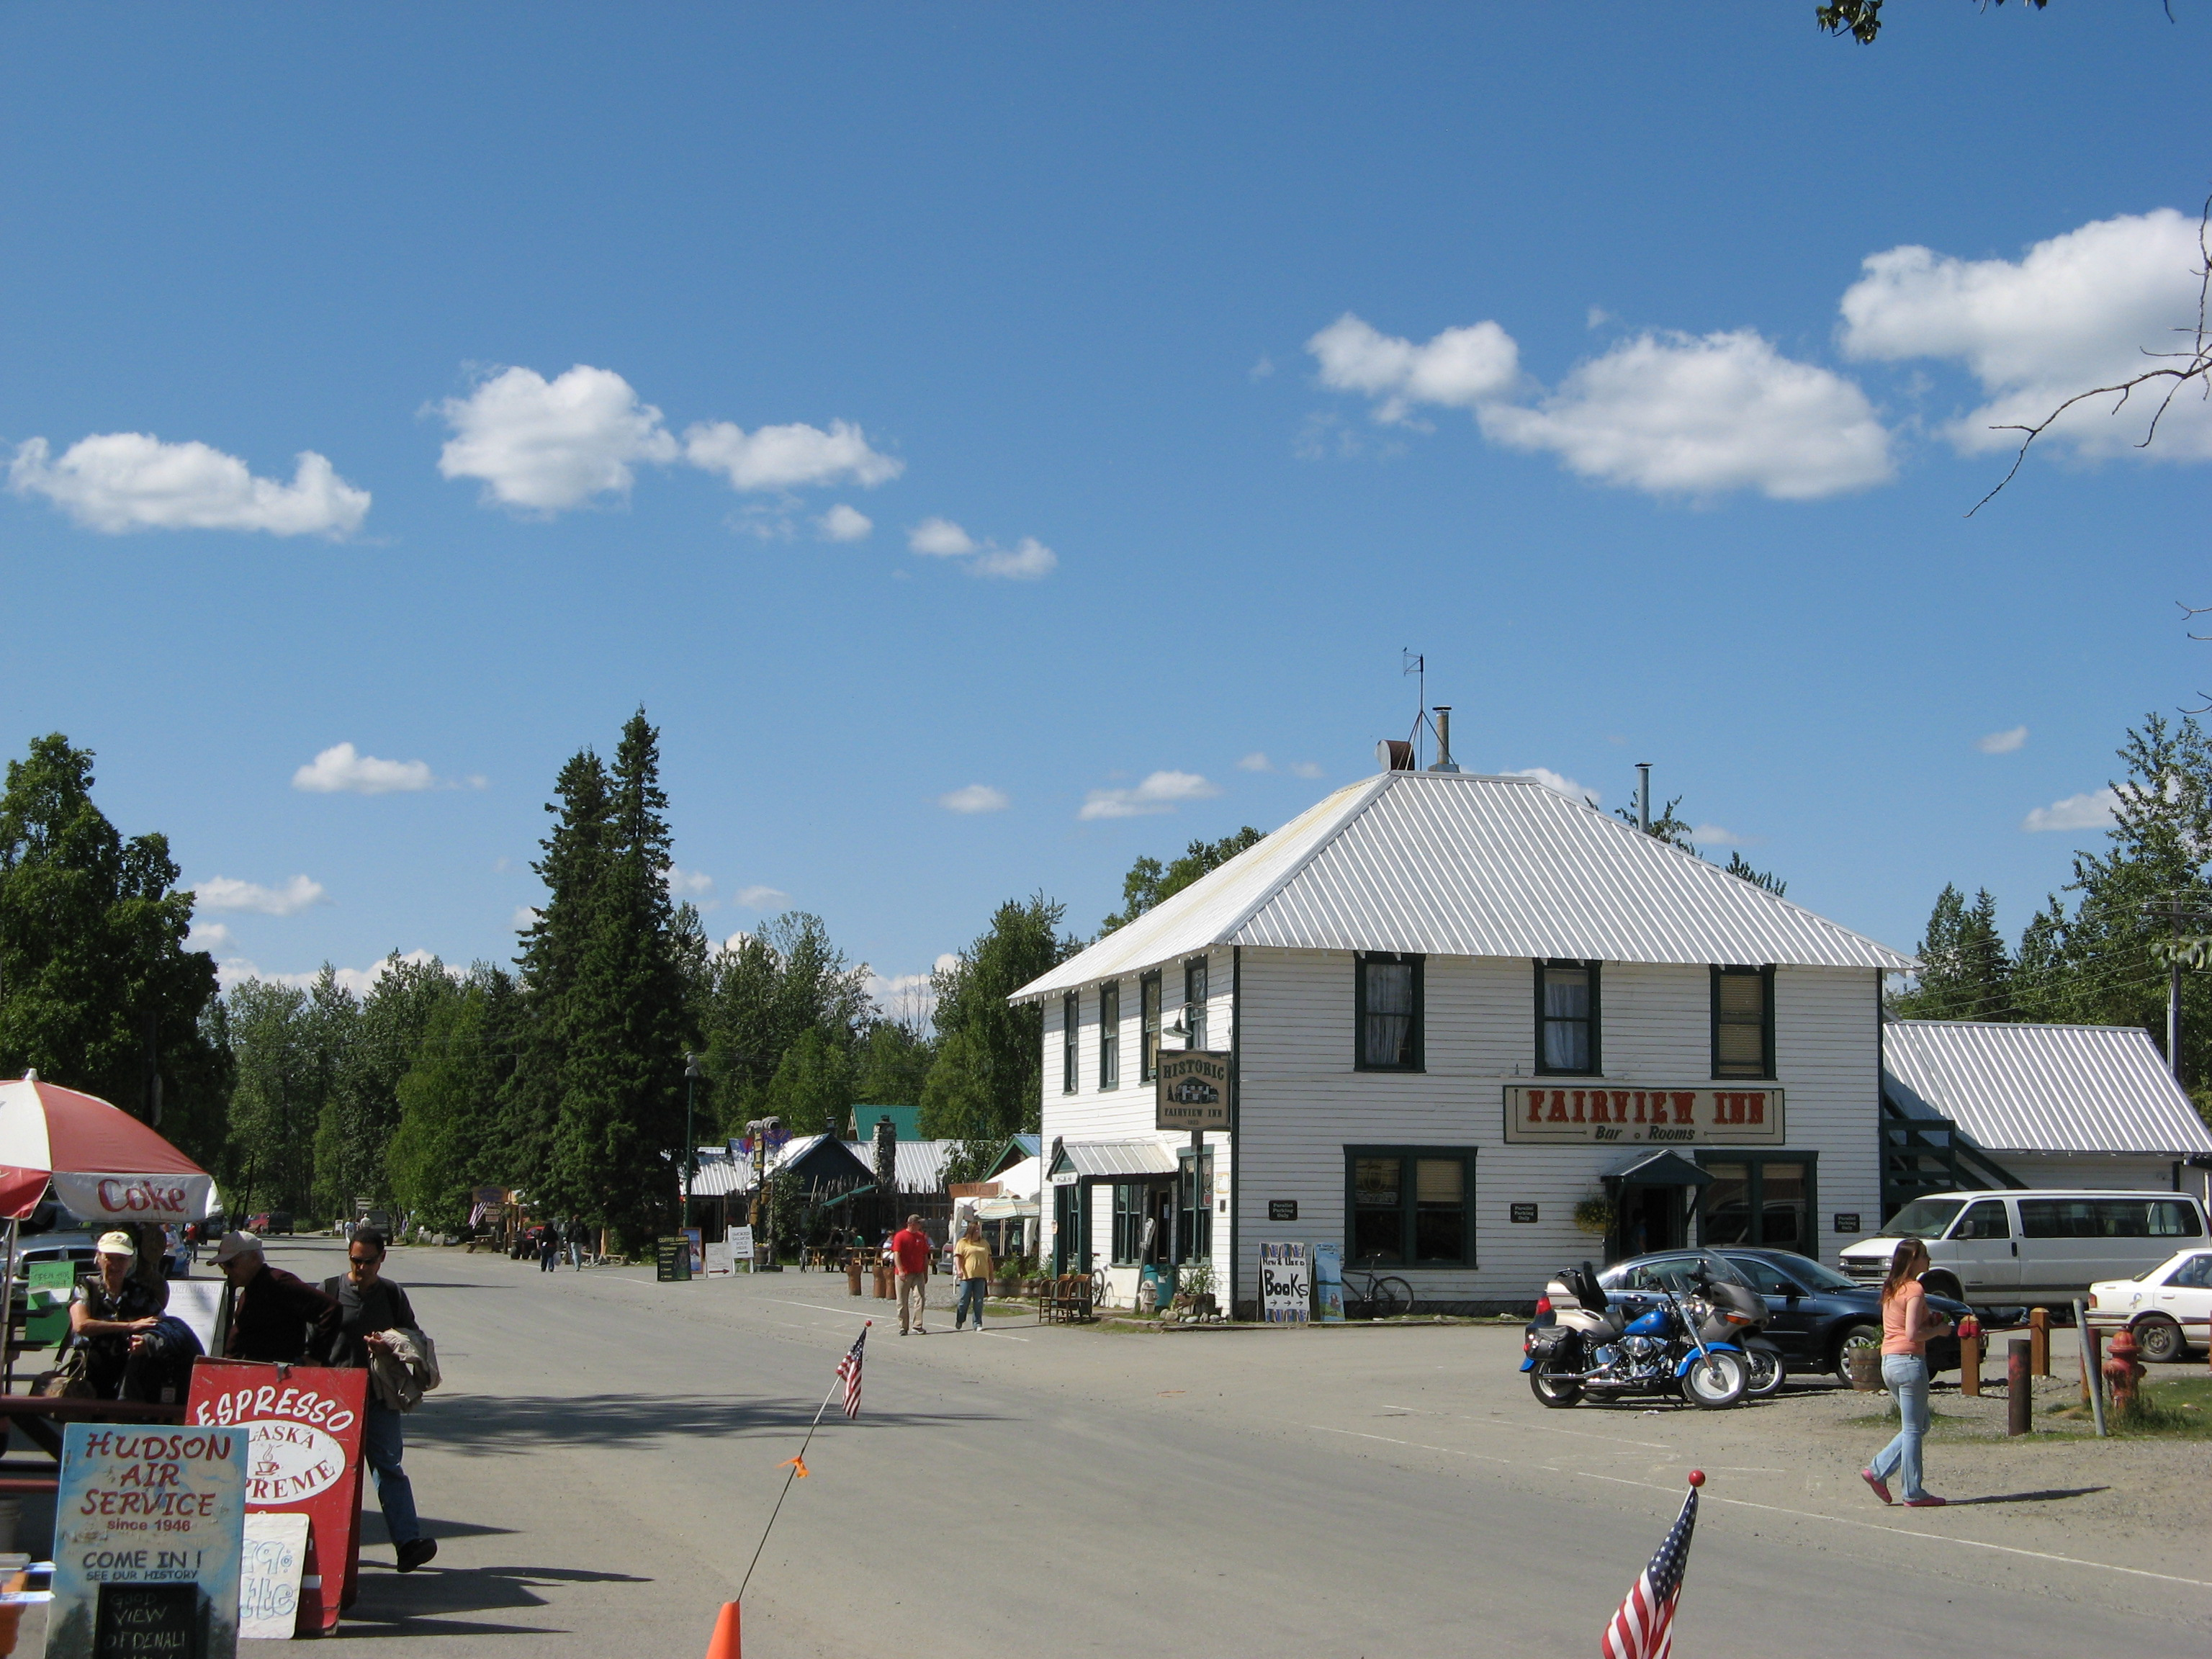 The Fairview Inn, Talkeetna, Alaska.